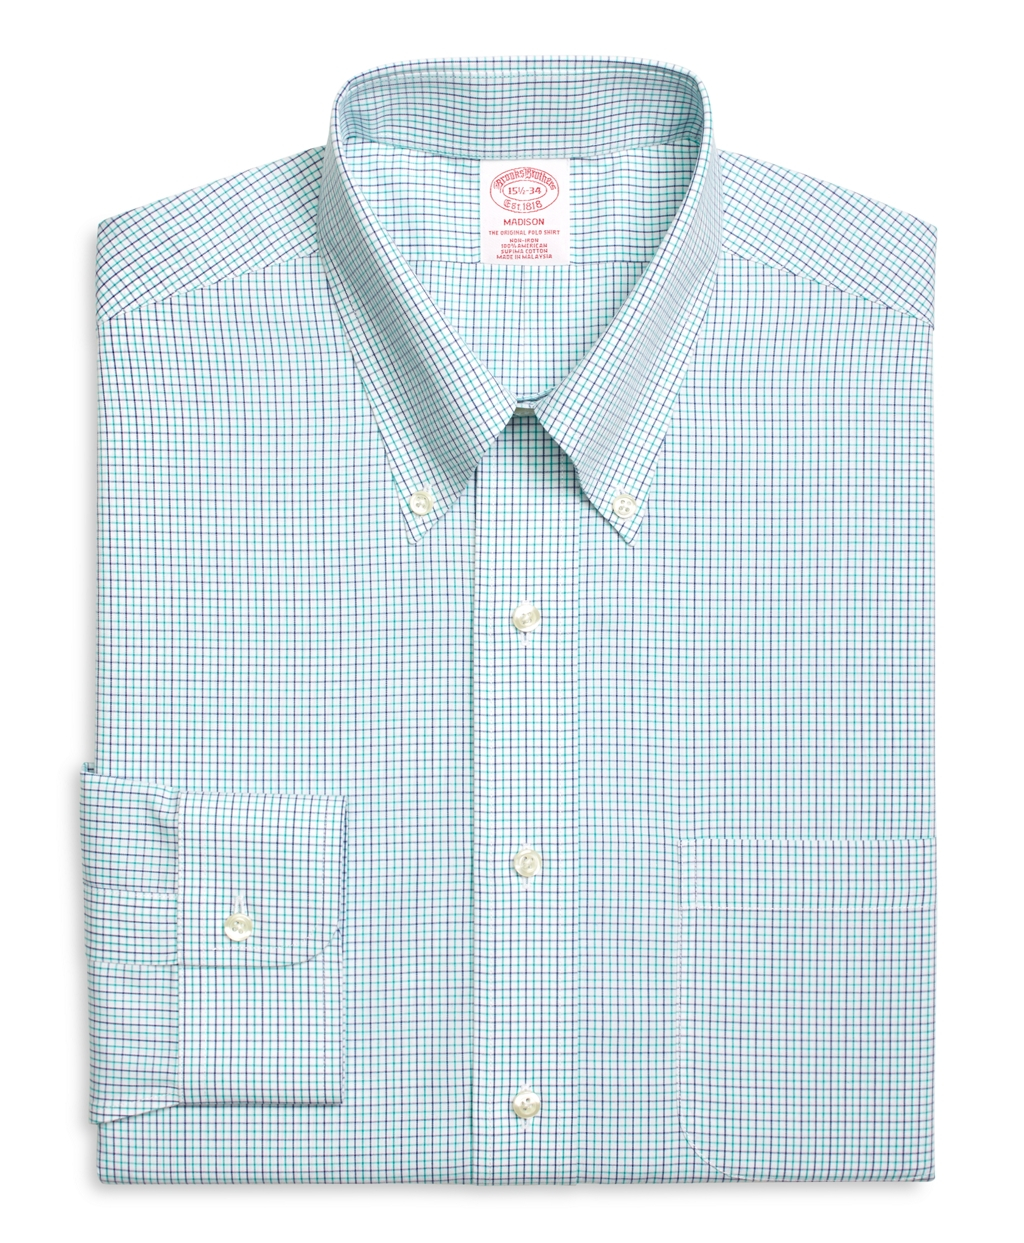 Brooks brothers non iron madison fit alternating for Brooks brothers dress shirt fit